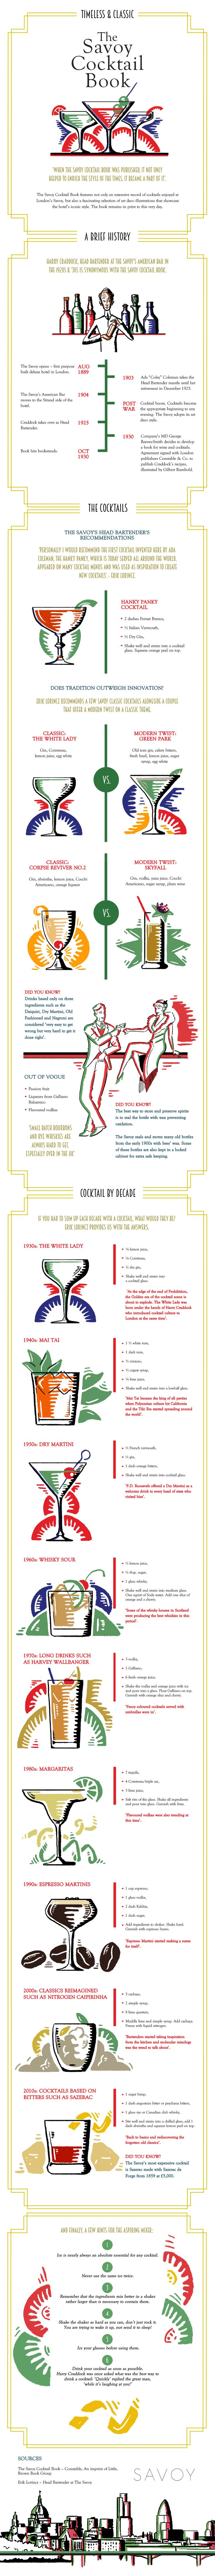 The Savoy Cocktail Book #Infographic #Food